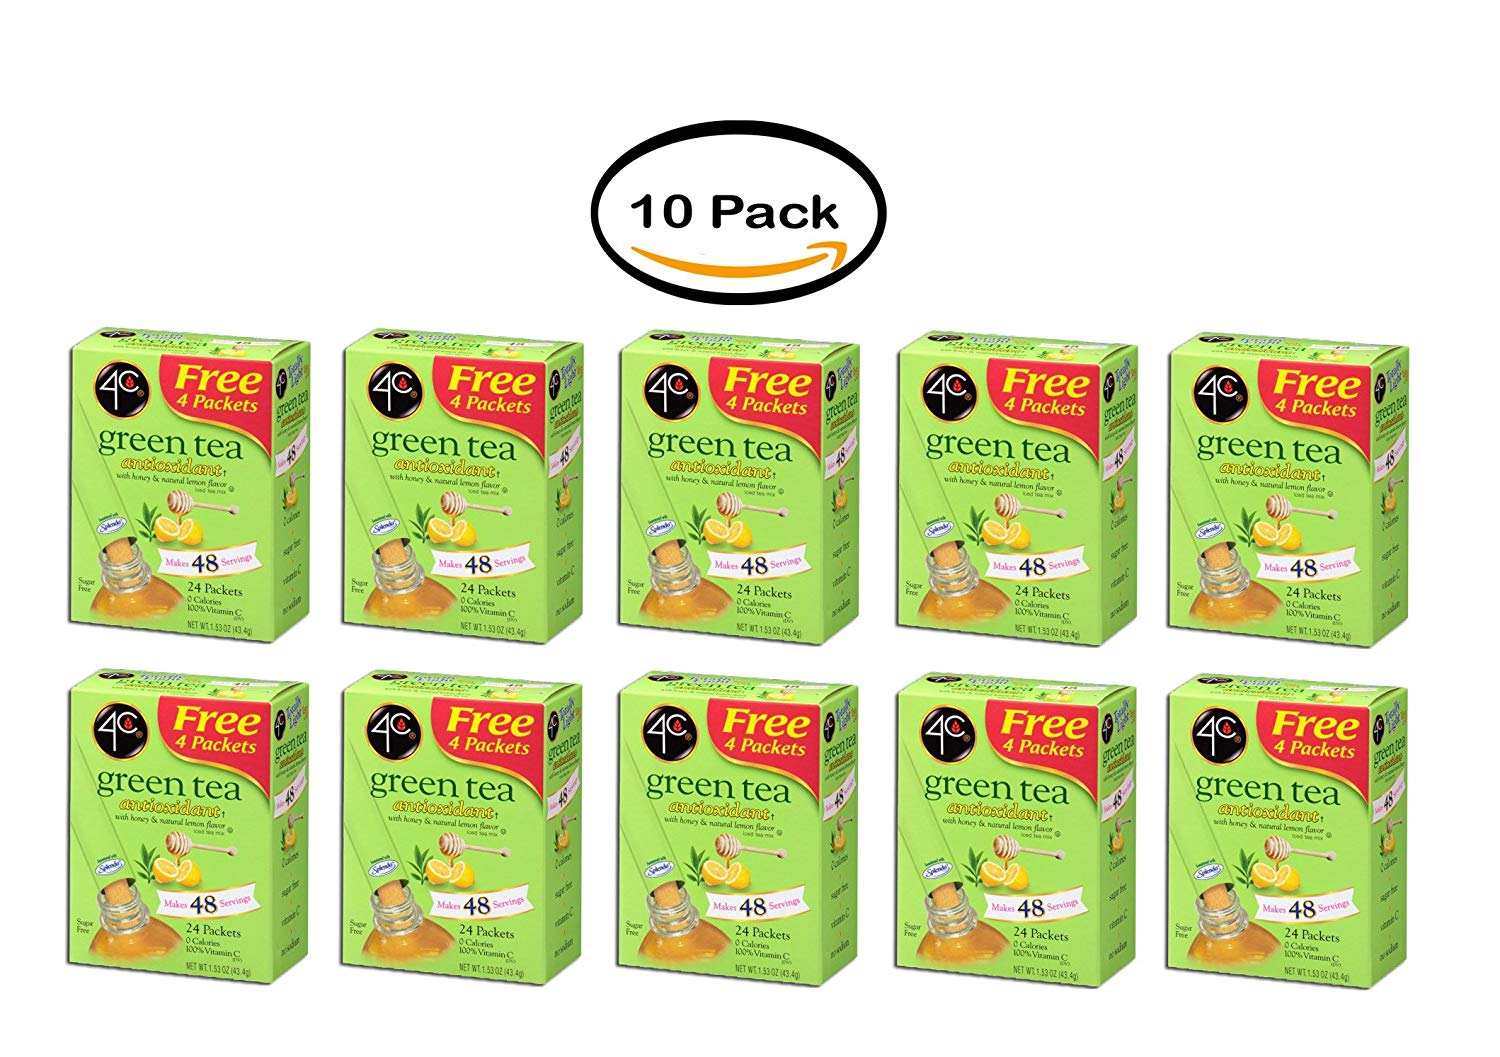 PACK OF 10 - 4C Totally Light Drink Mix, Green Tea, 1.53 Oz, 20 Packets, 1 Count